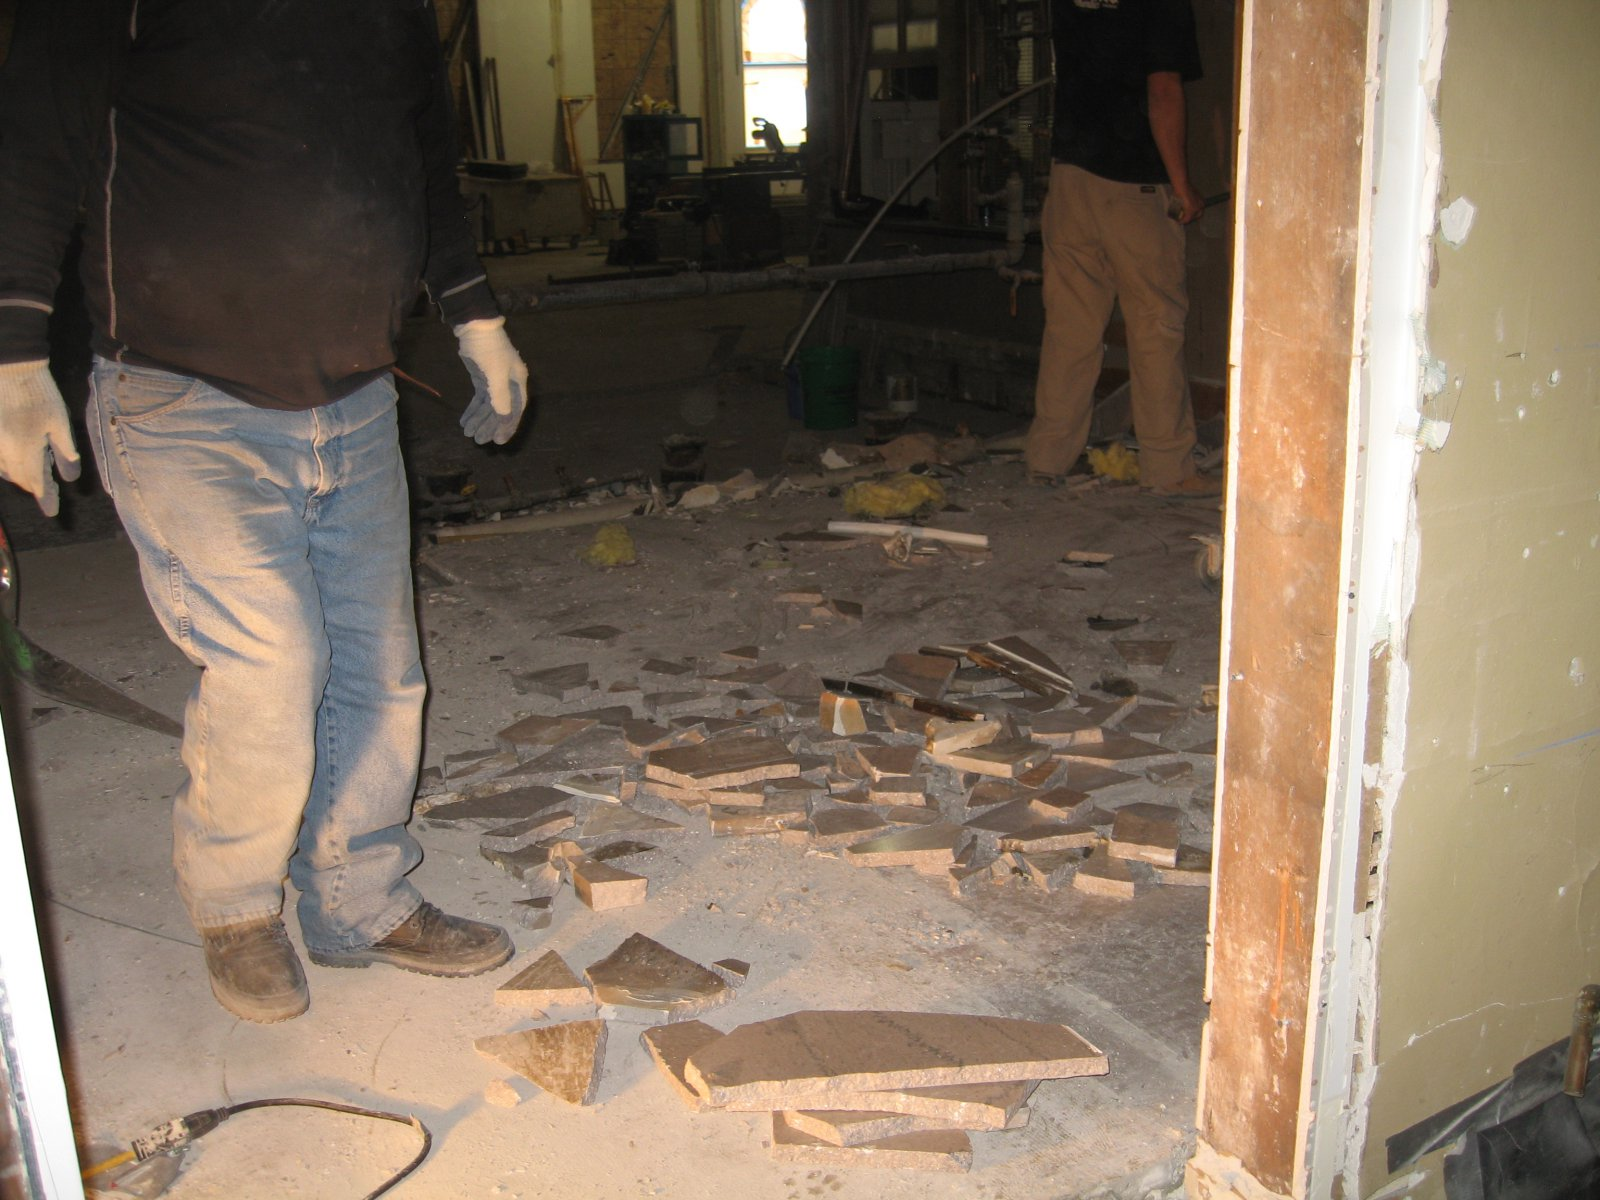 Marble floor being removed